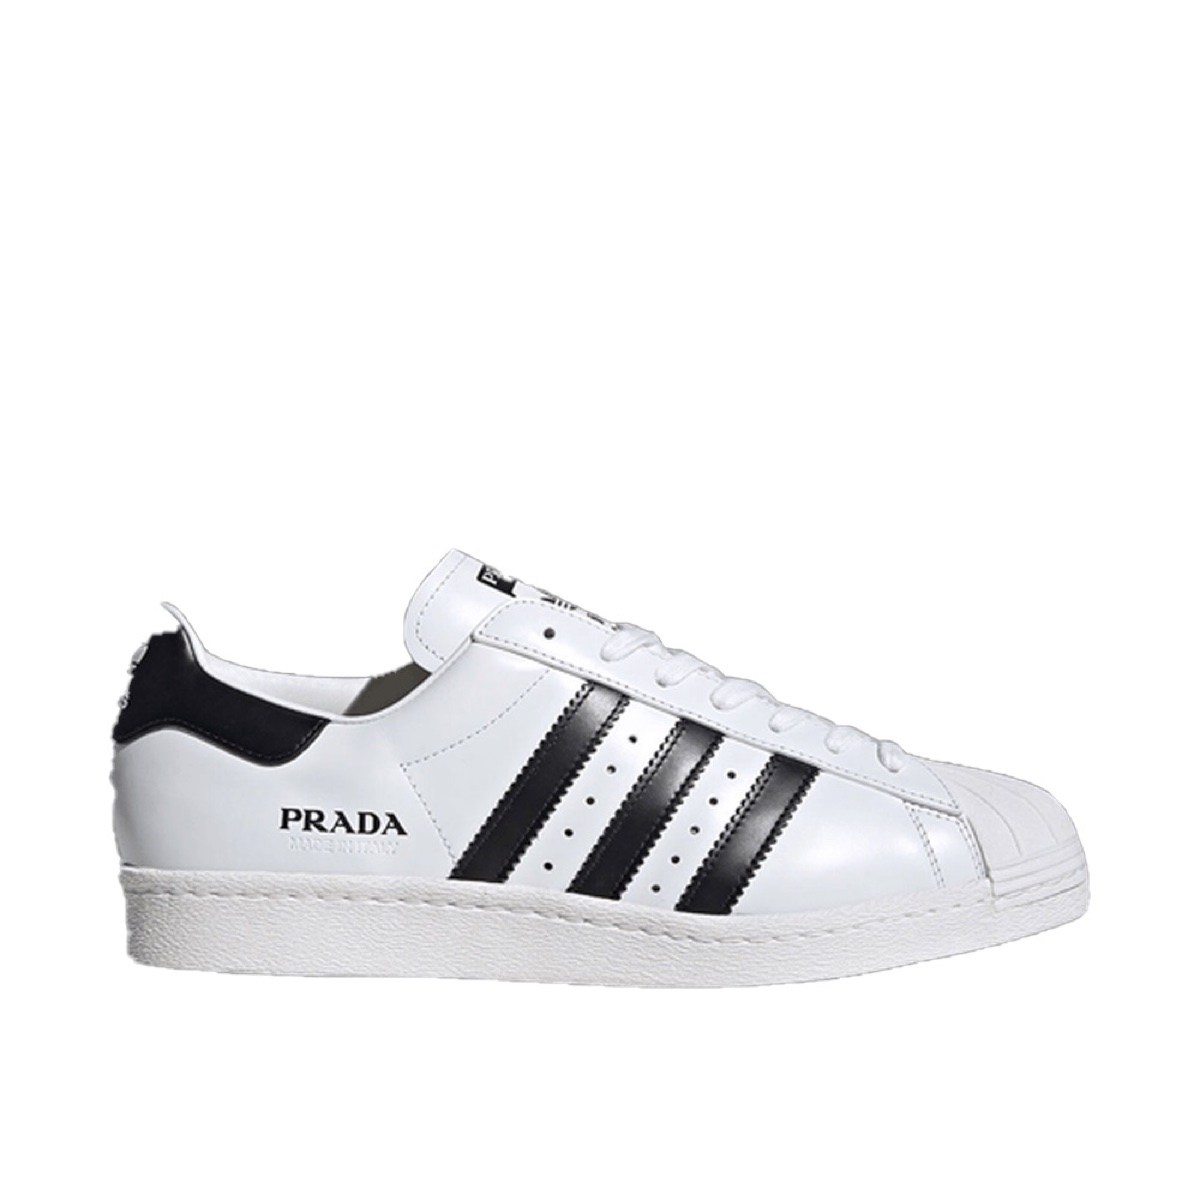 Prada x Superstar 'Core White'